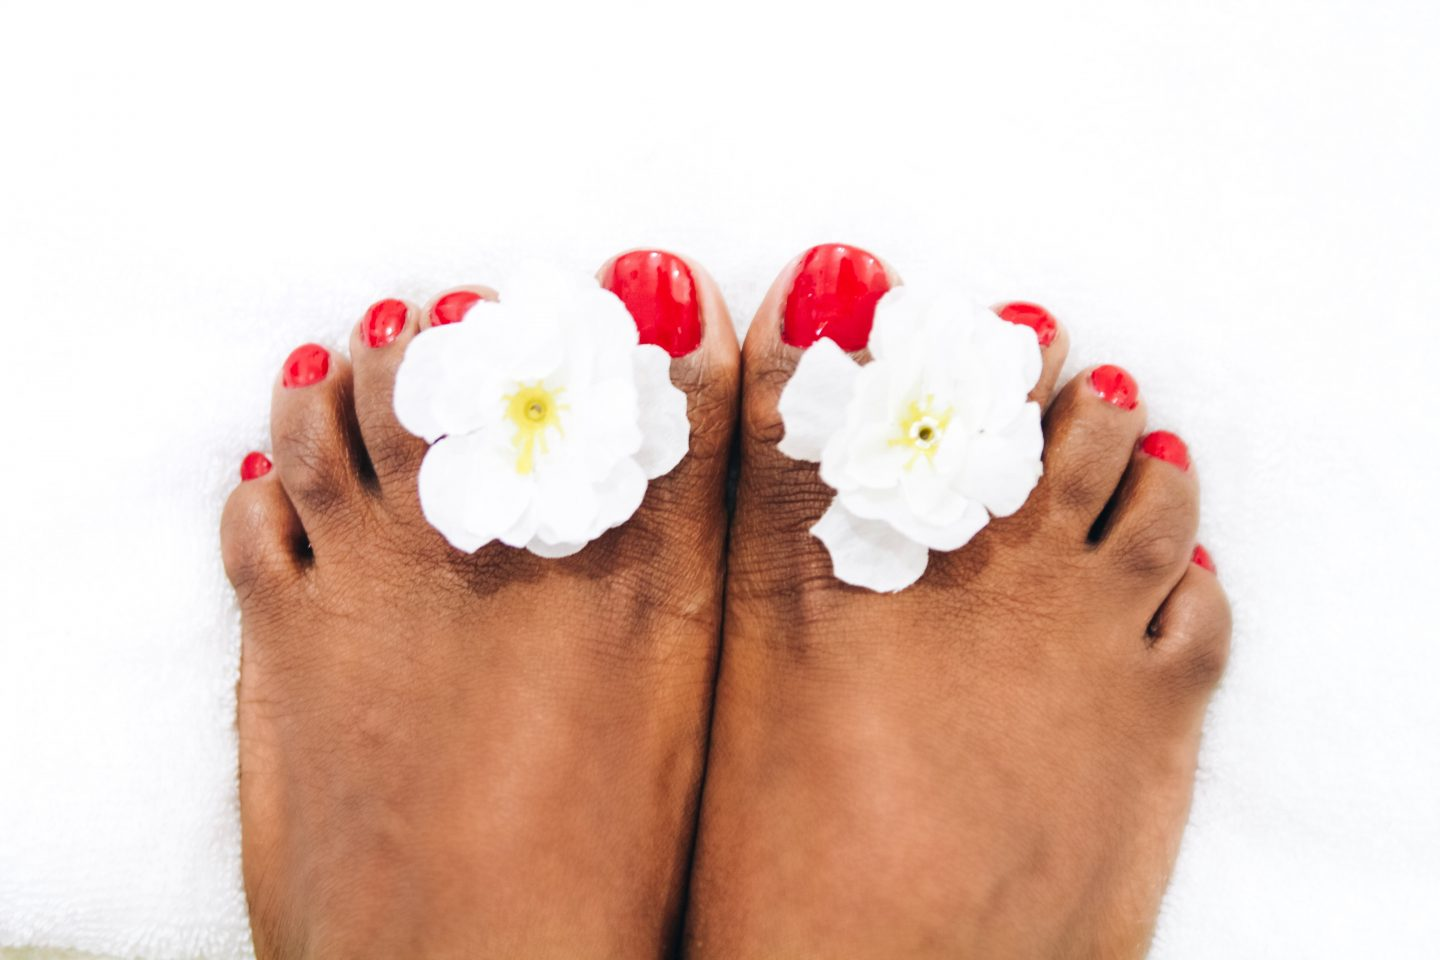 OSHINITY GET A MANI PEDI AT HOME WITH LYNK KENYA BLOG REVIEW NAIROBI KENYA